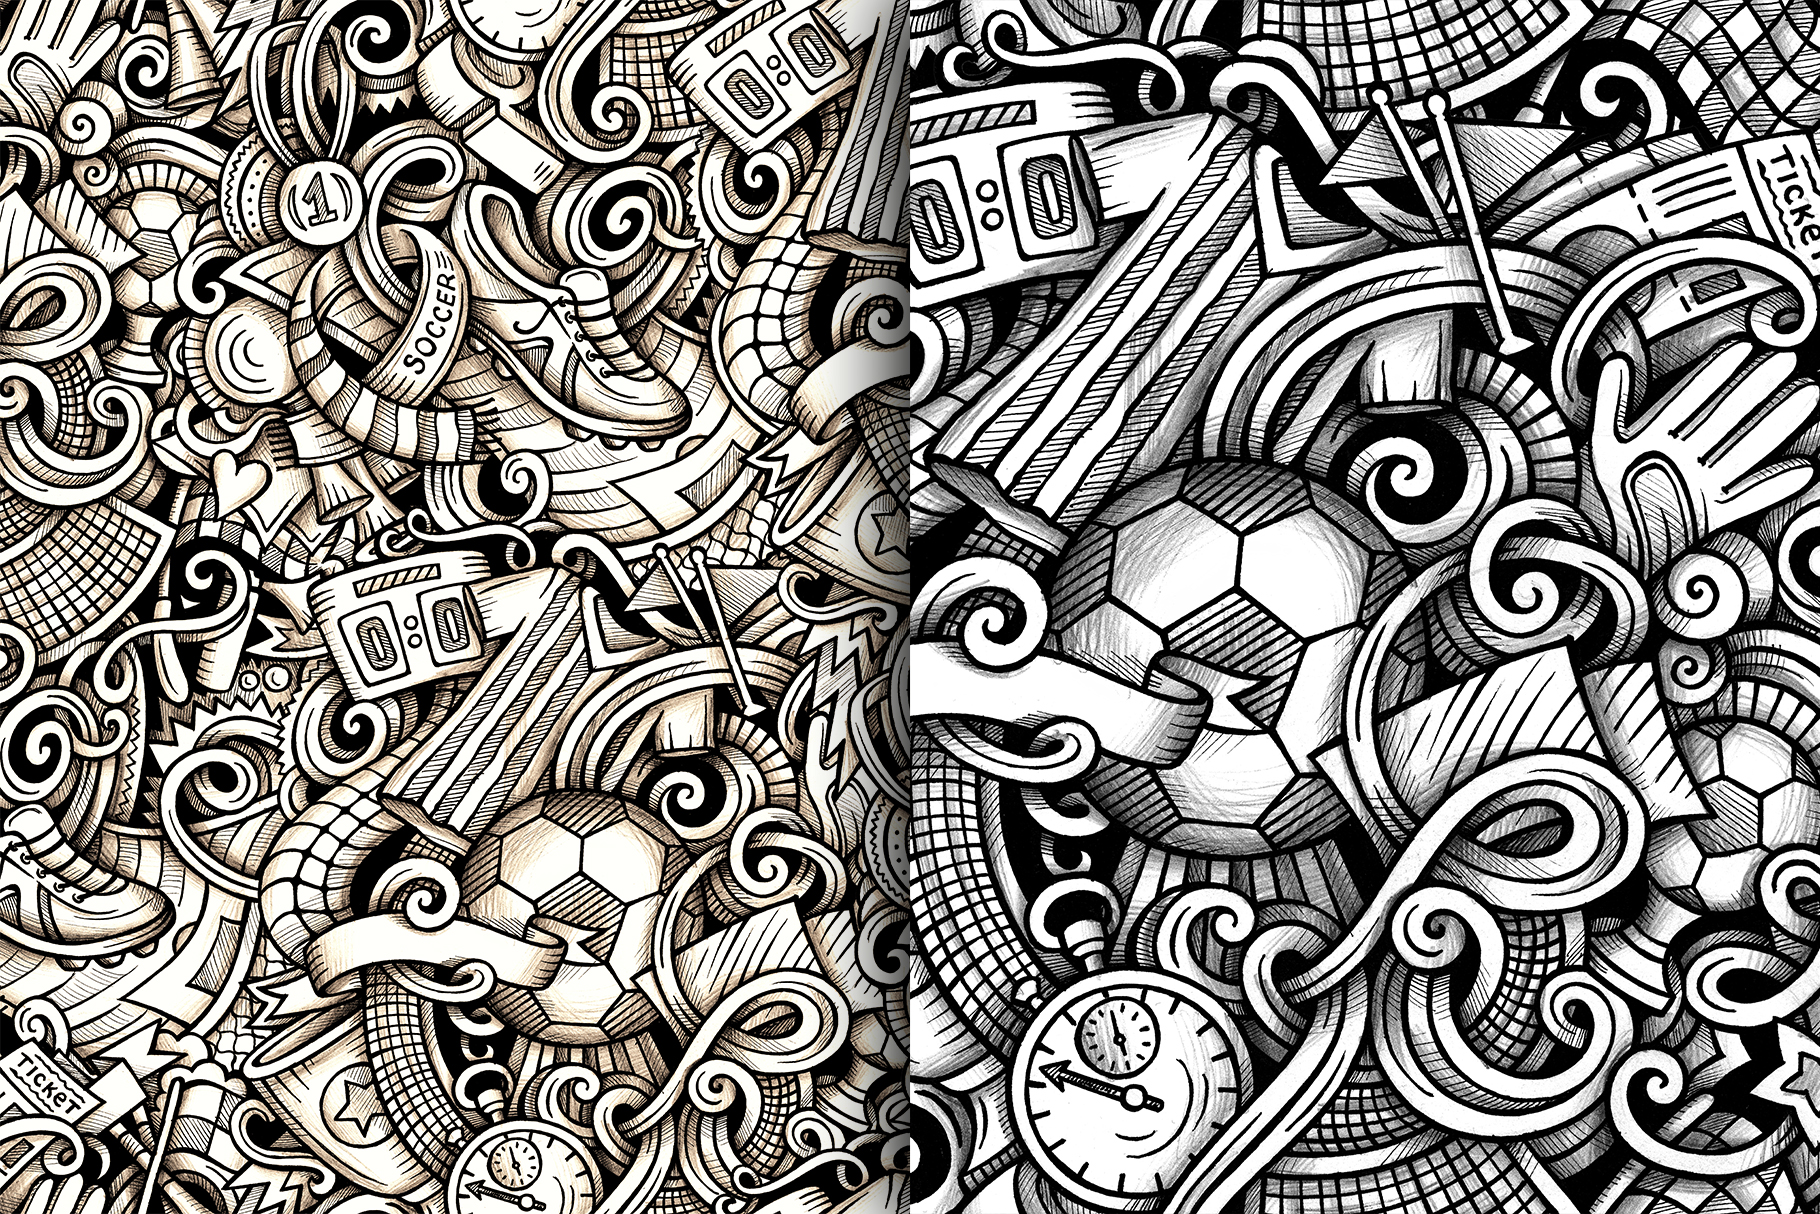 Soccer Graphic Doodle Patterns example image 4